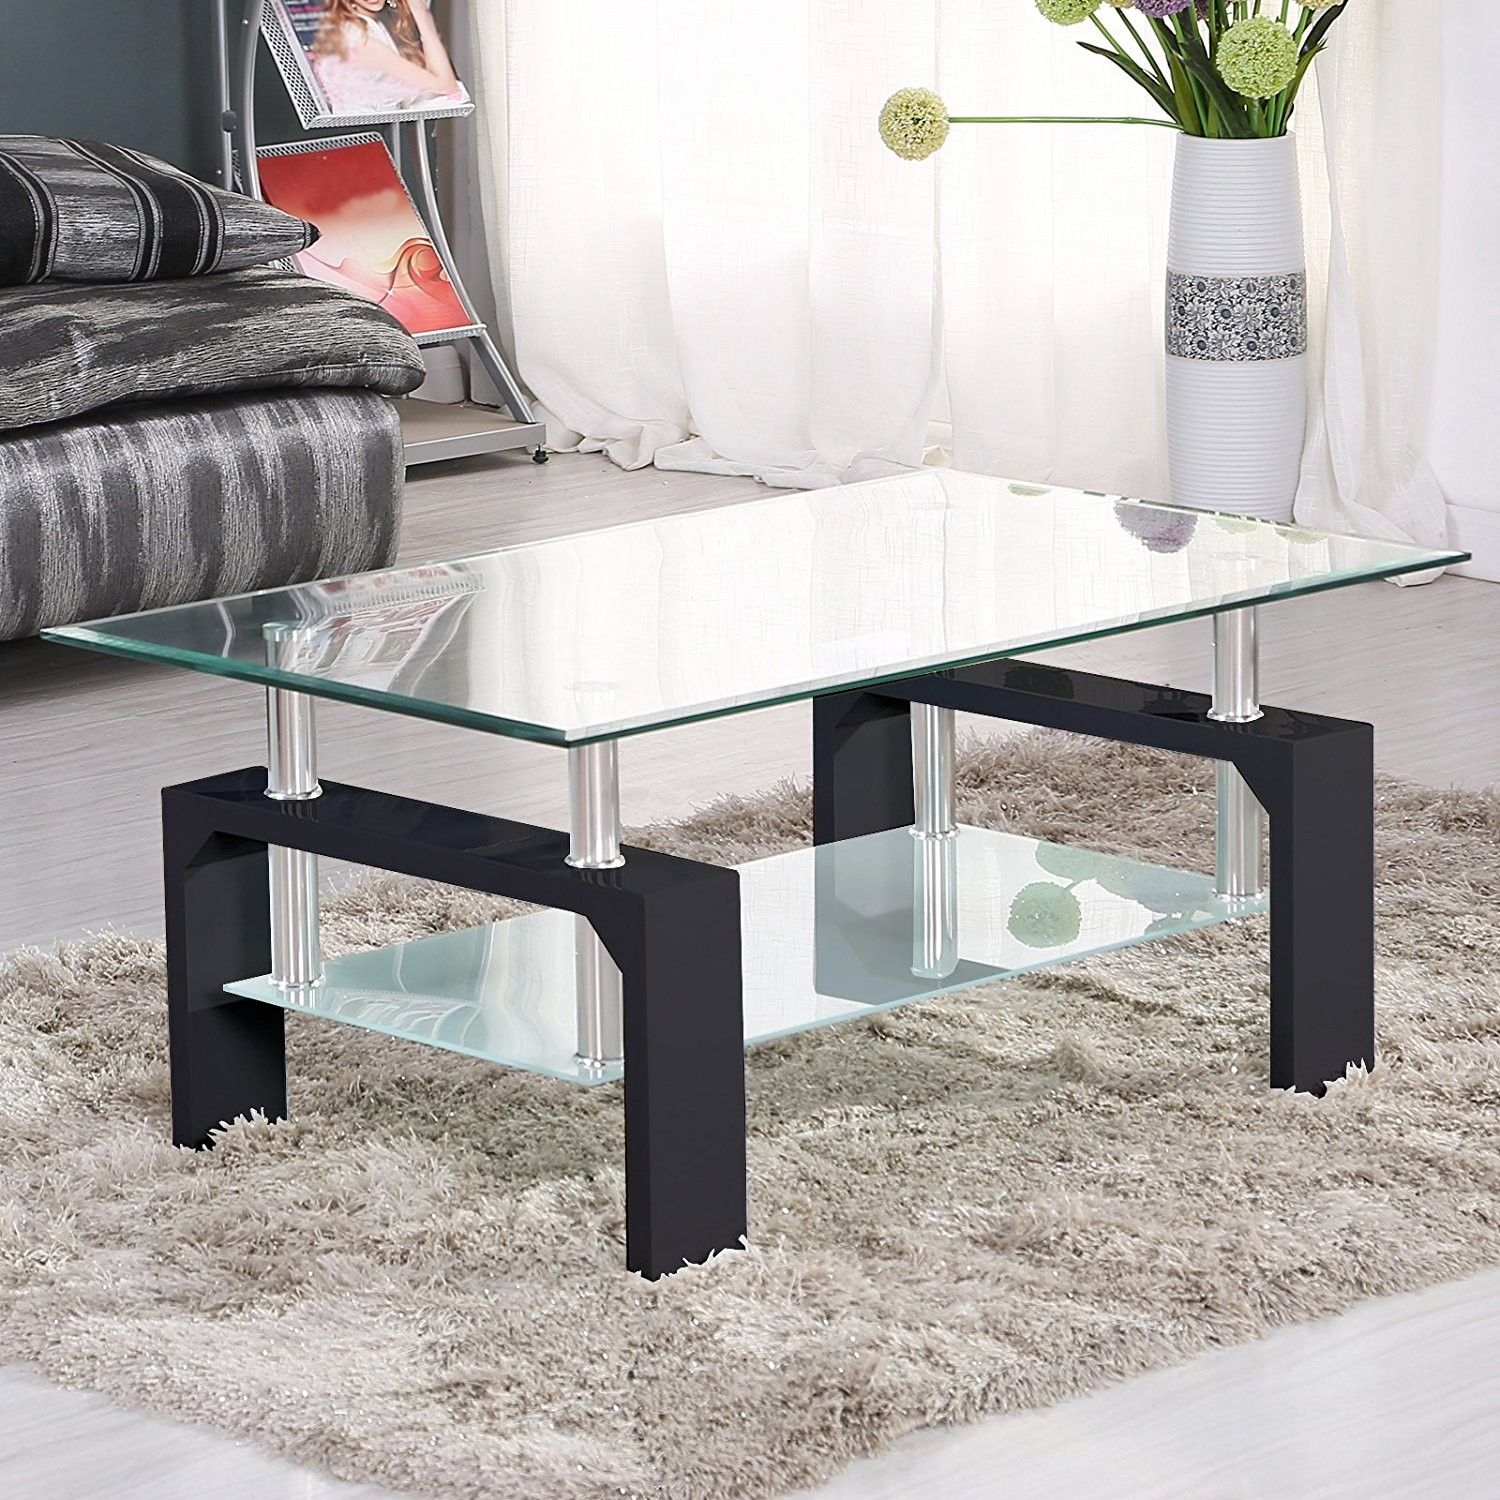 Small Coffee Tables For Small Spaces Download Living Room 30 Fresh Living Room Leather Coffee Coffee Table Small Space Coffee Table Coffee Table With Shelf [ 1500 x 1500 Pixel ]